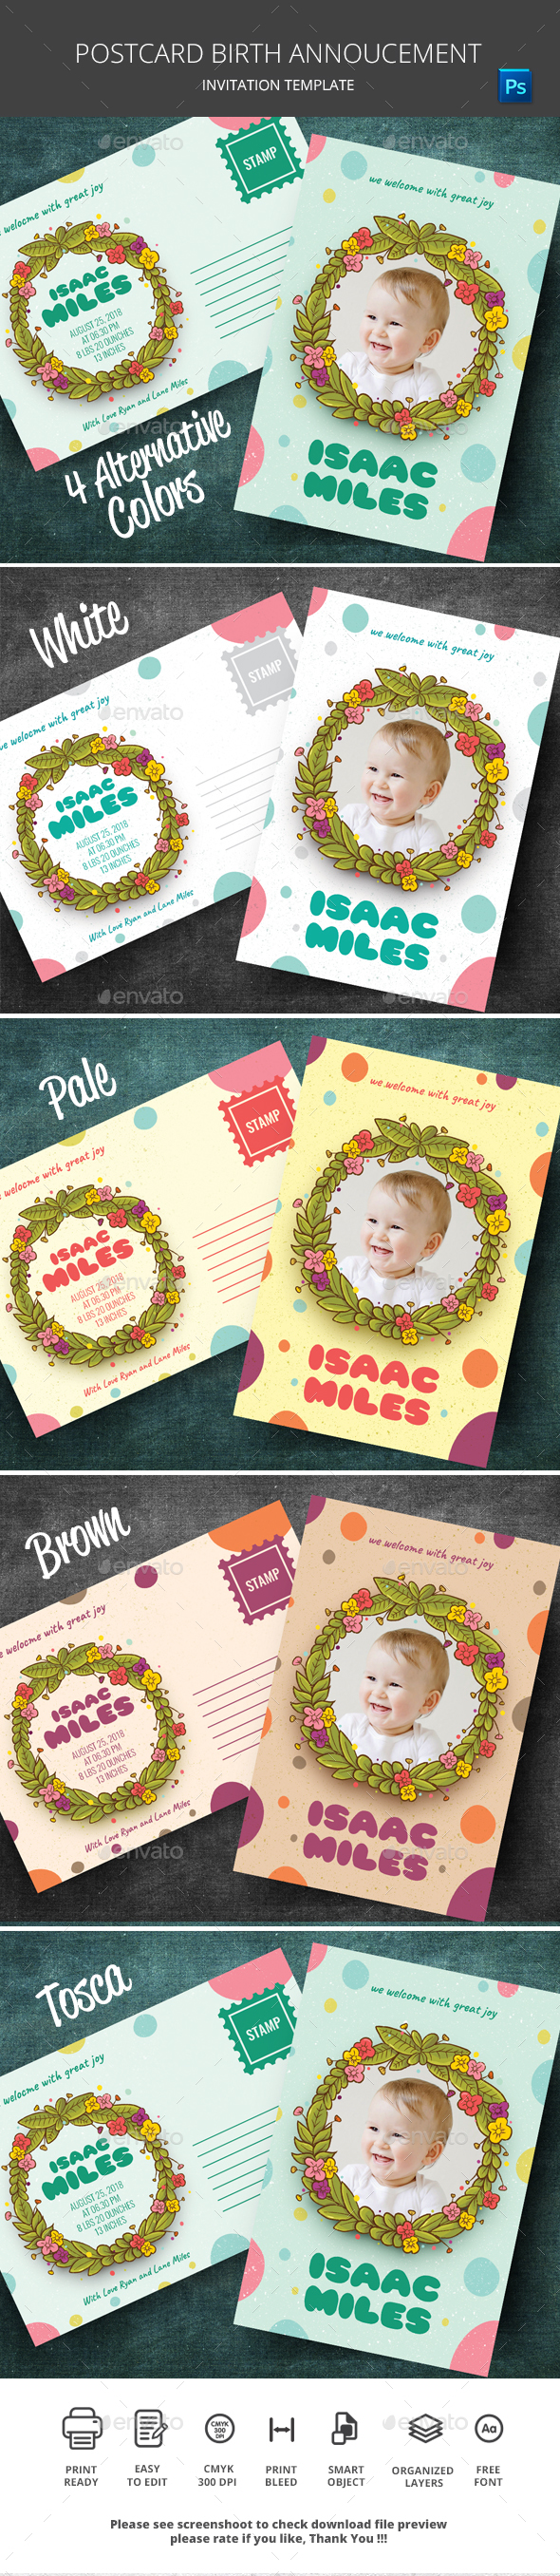 Postcard Birth Announcement - Events Flyers